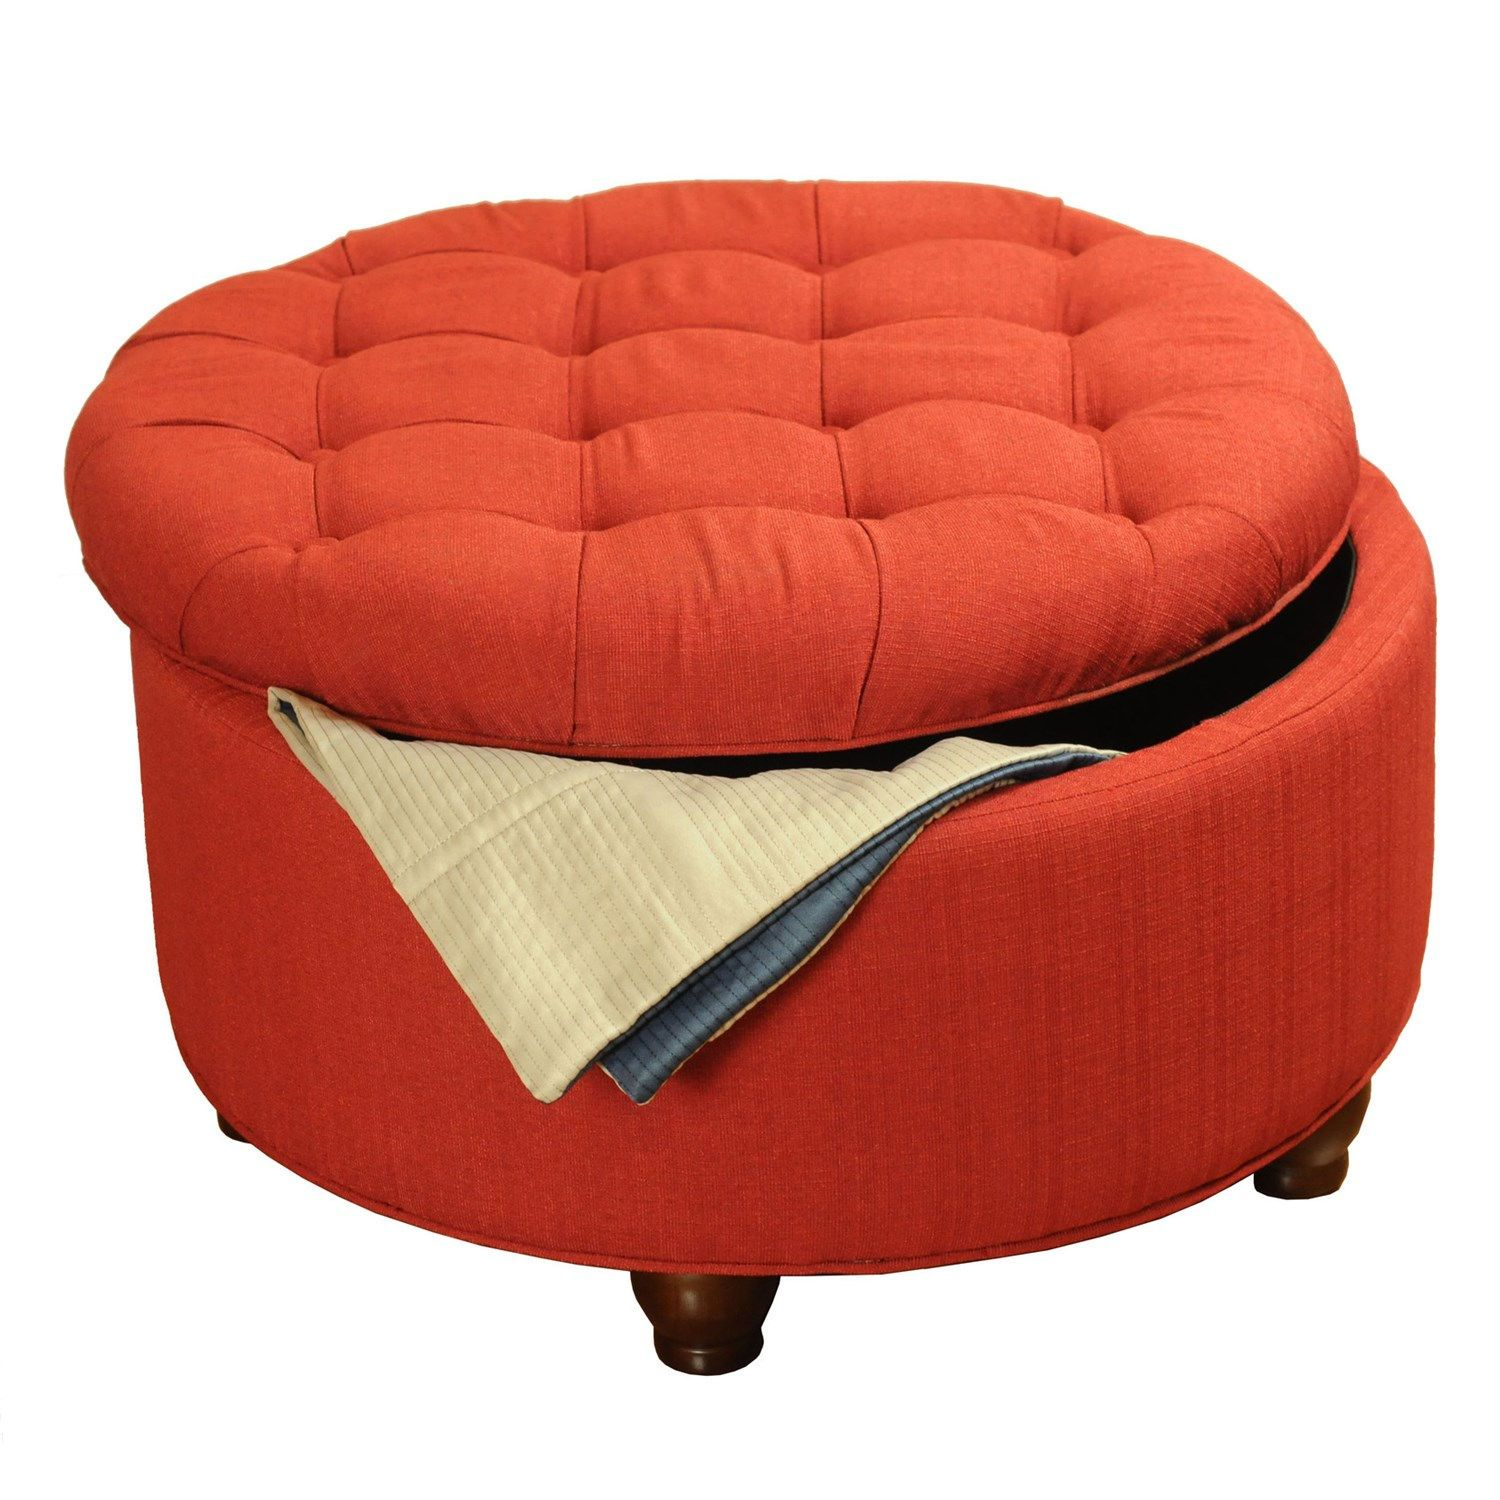 Tremendous Kinfine K6206 F409 Red Tufted Round Cocktail Storage Ottoman Pabps2019 Chair Design Images Pabps2019Com